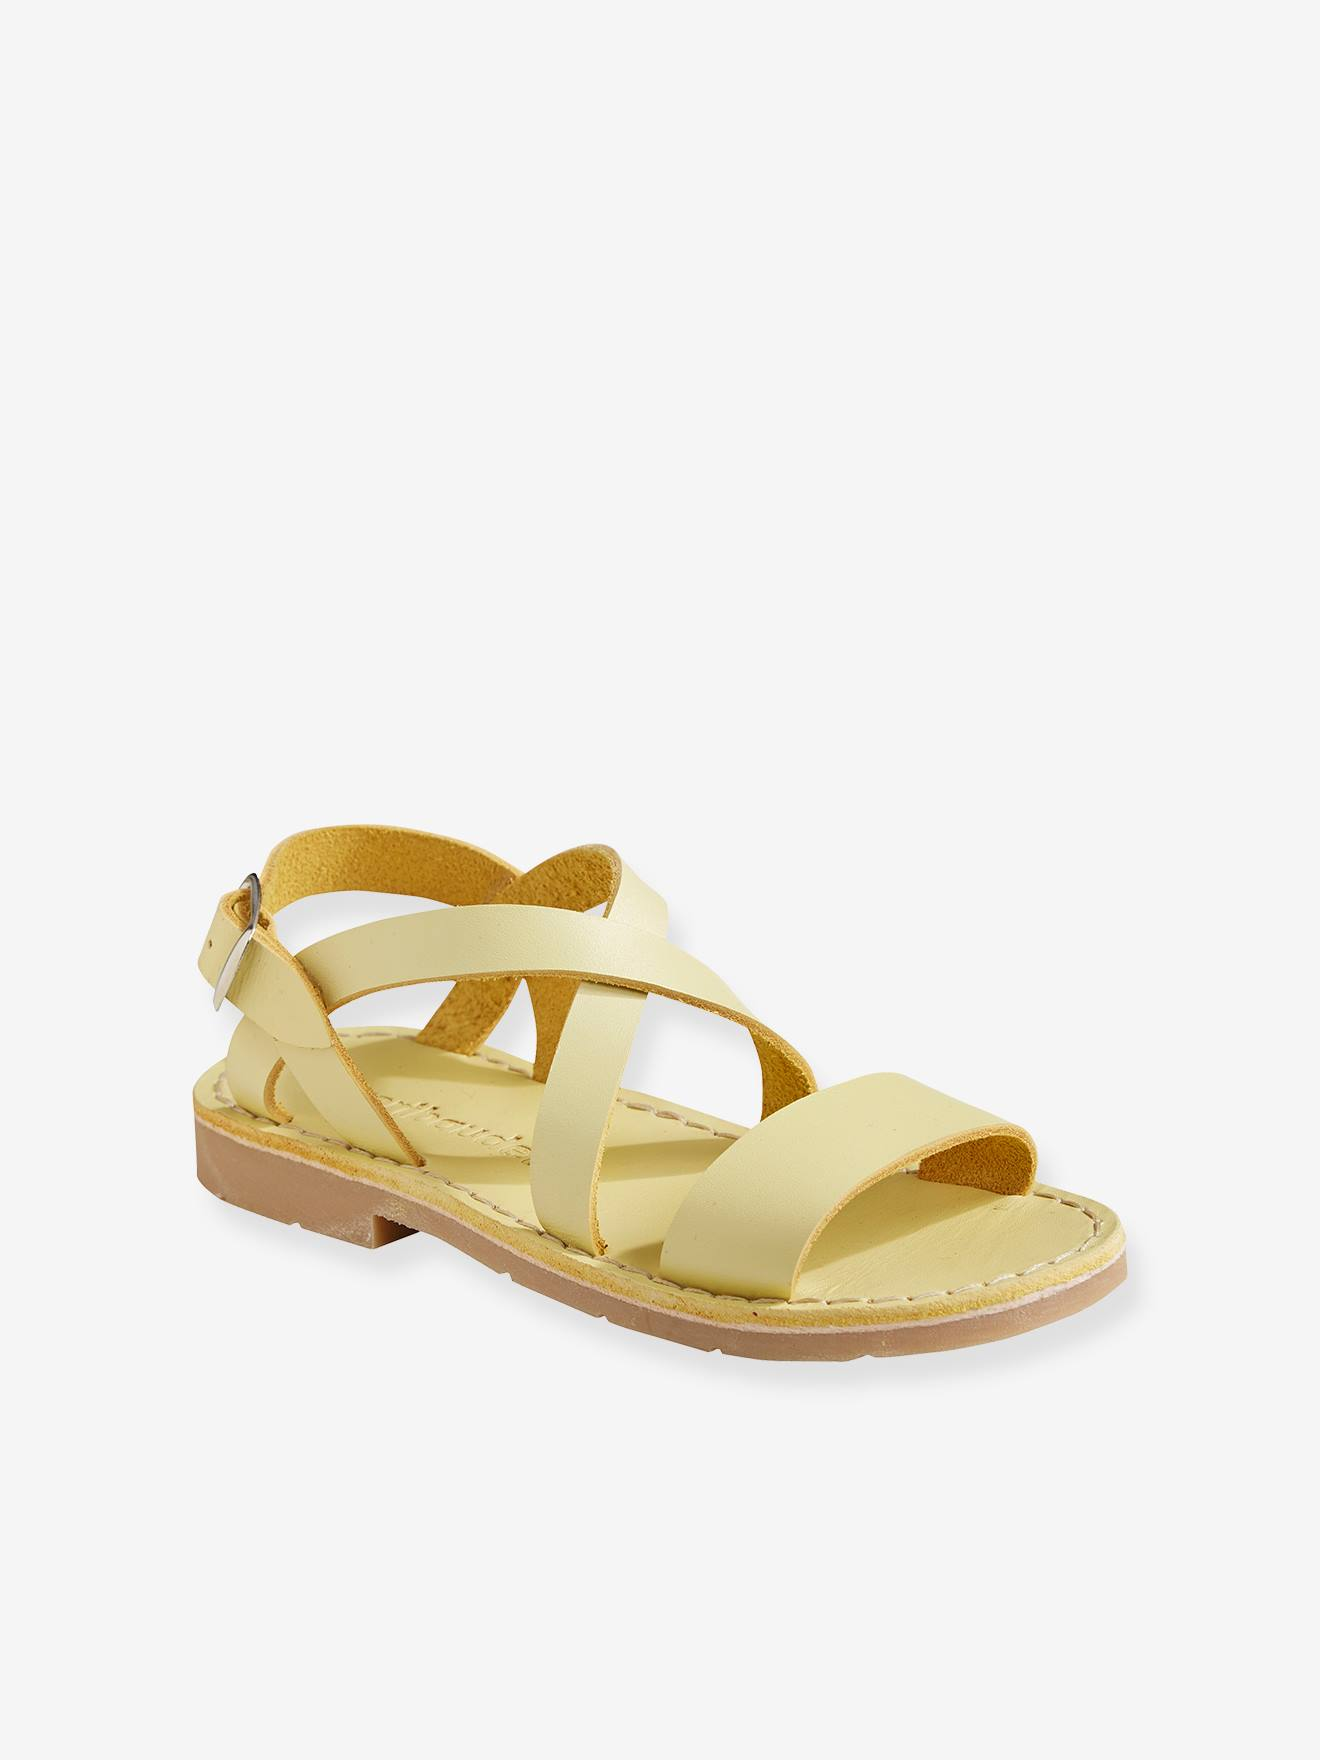 Vegetable Tanned Leather Sandals for